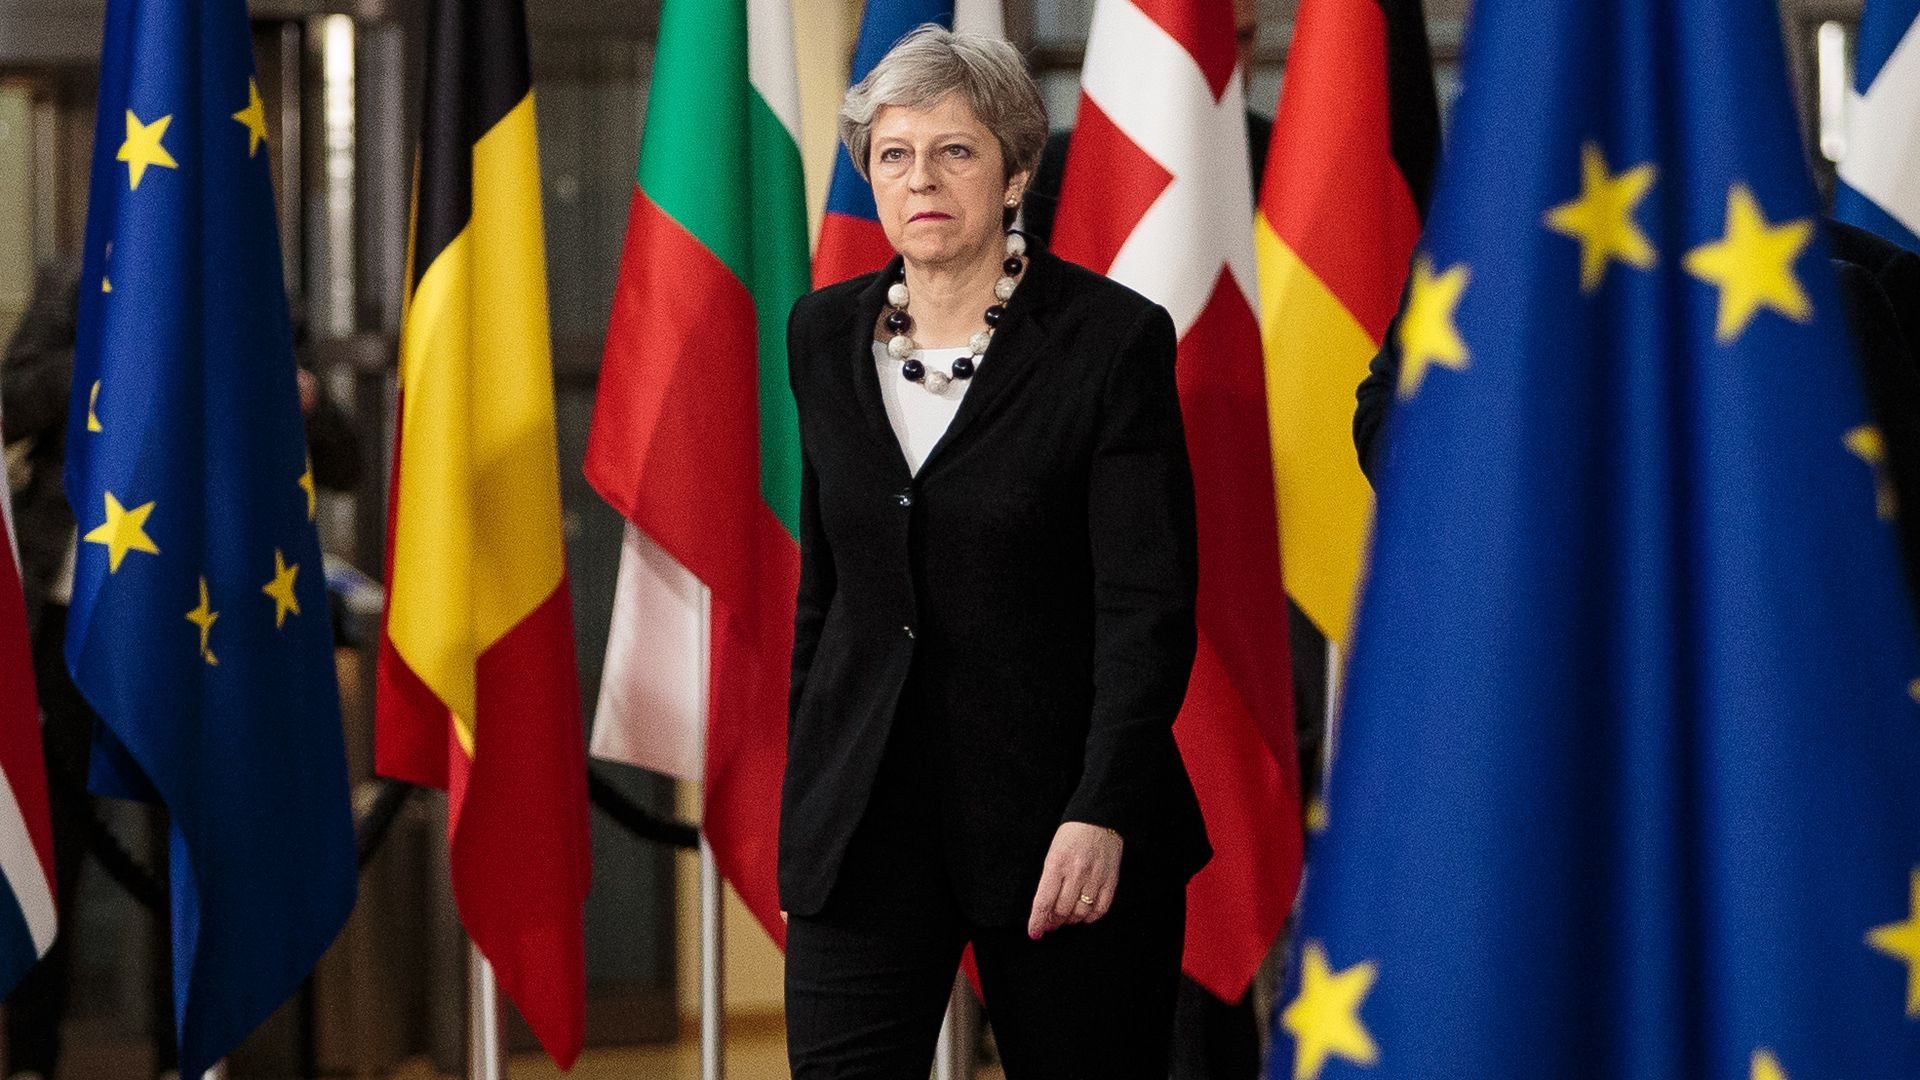 British Prime Minster Theresa May arrives at the Council of the European Union.